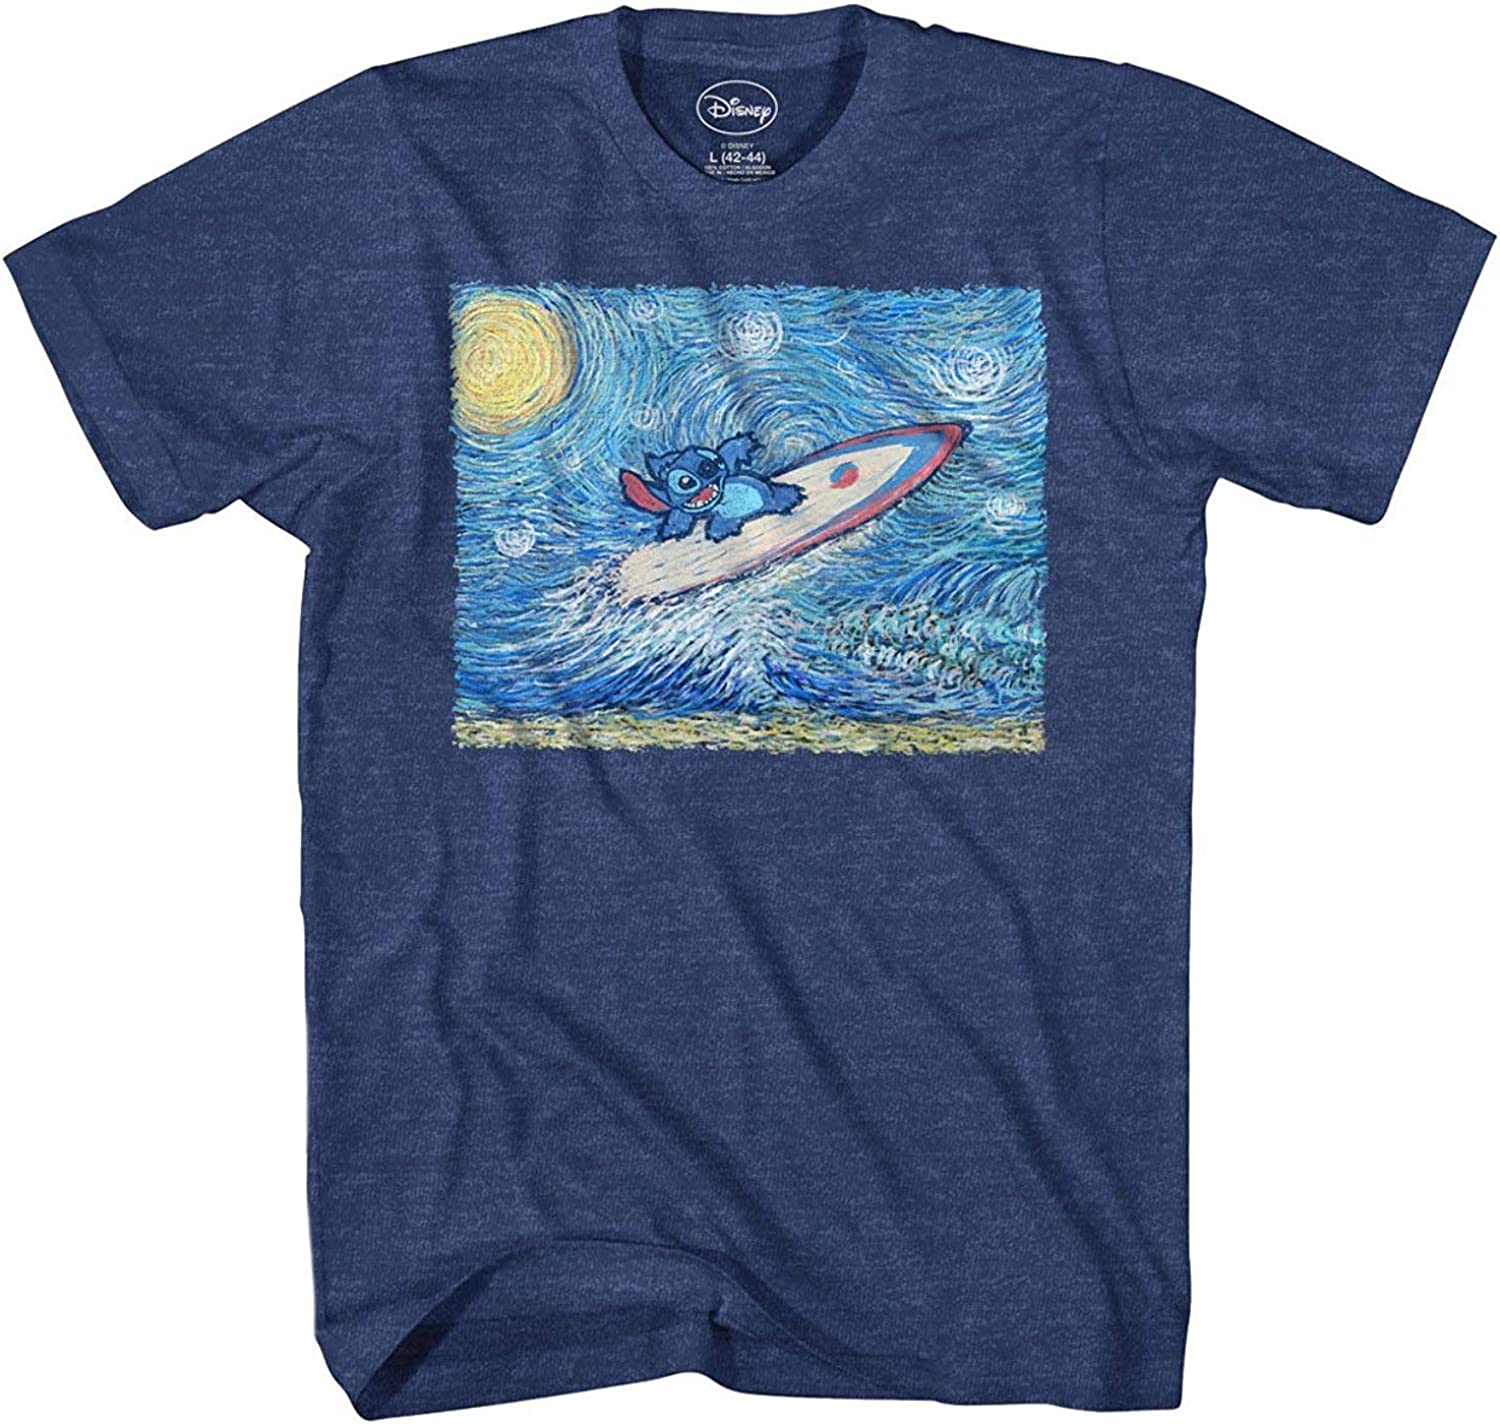 Disney Lilo and Stitch Starry Night Surfing T-Shirt